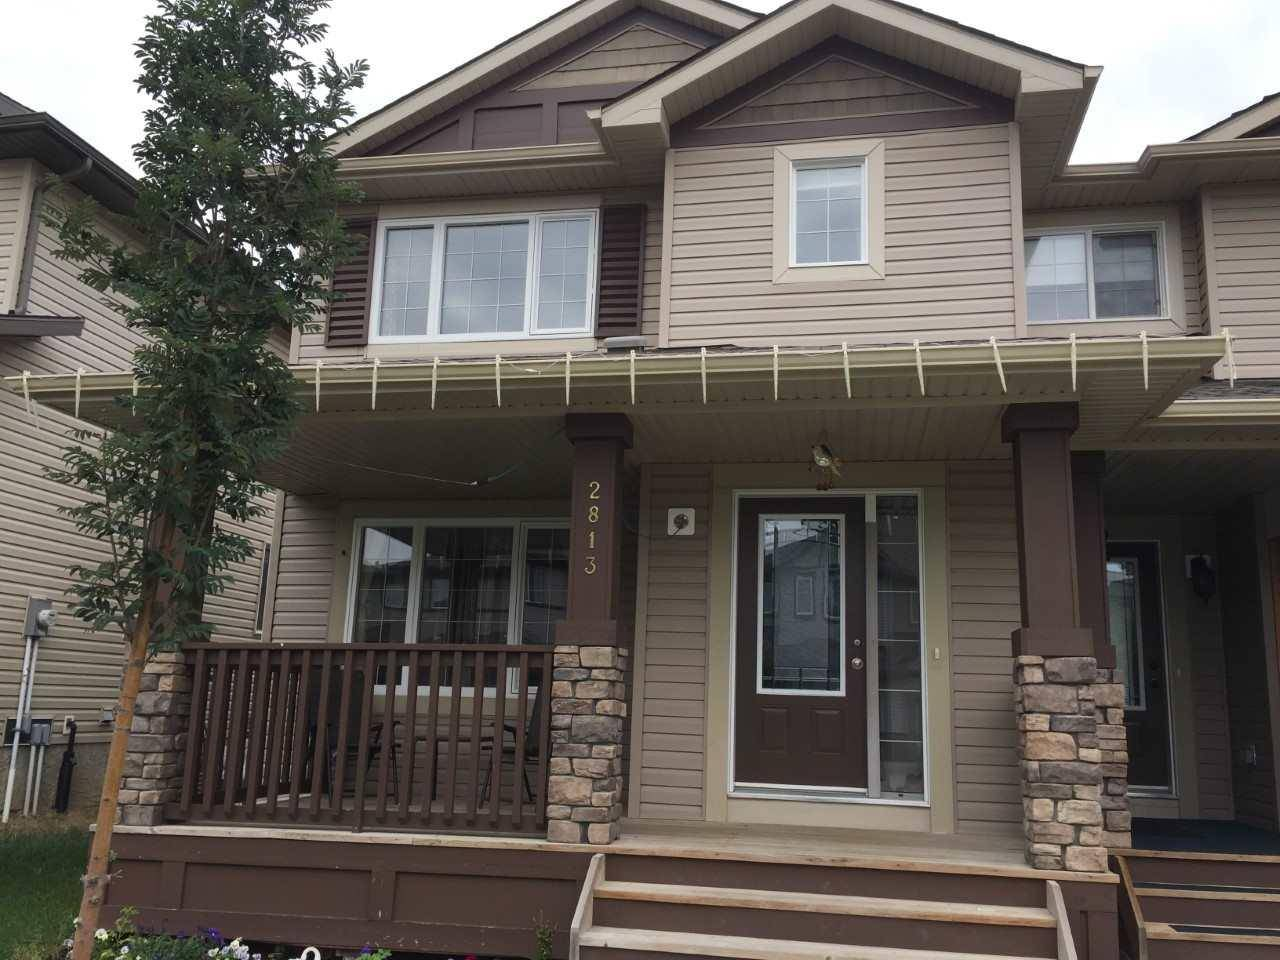 Townhouse for sale at 2813 15 St Nw Edmonton Alberta - MLS: E4186156